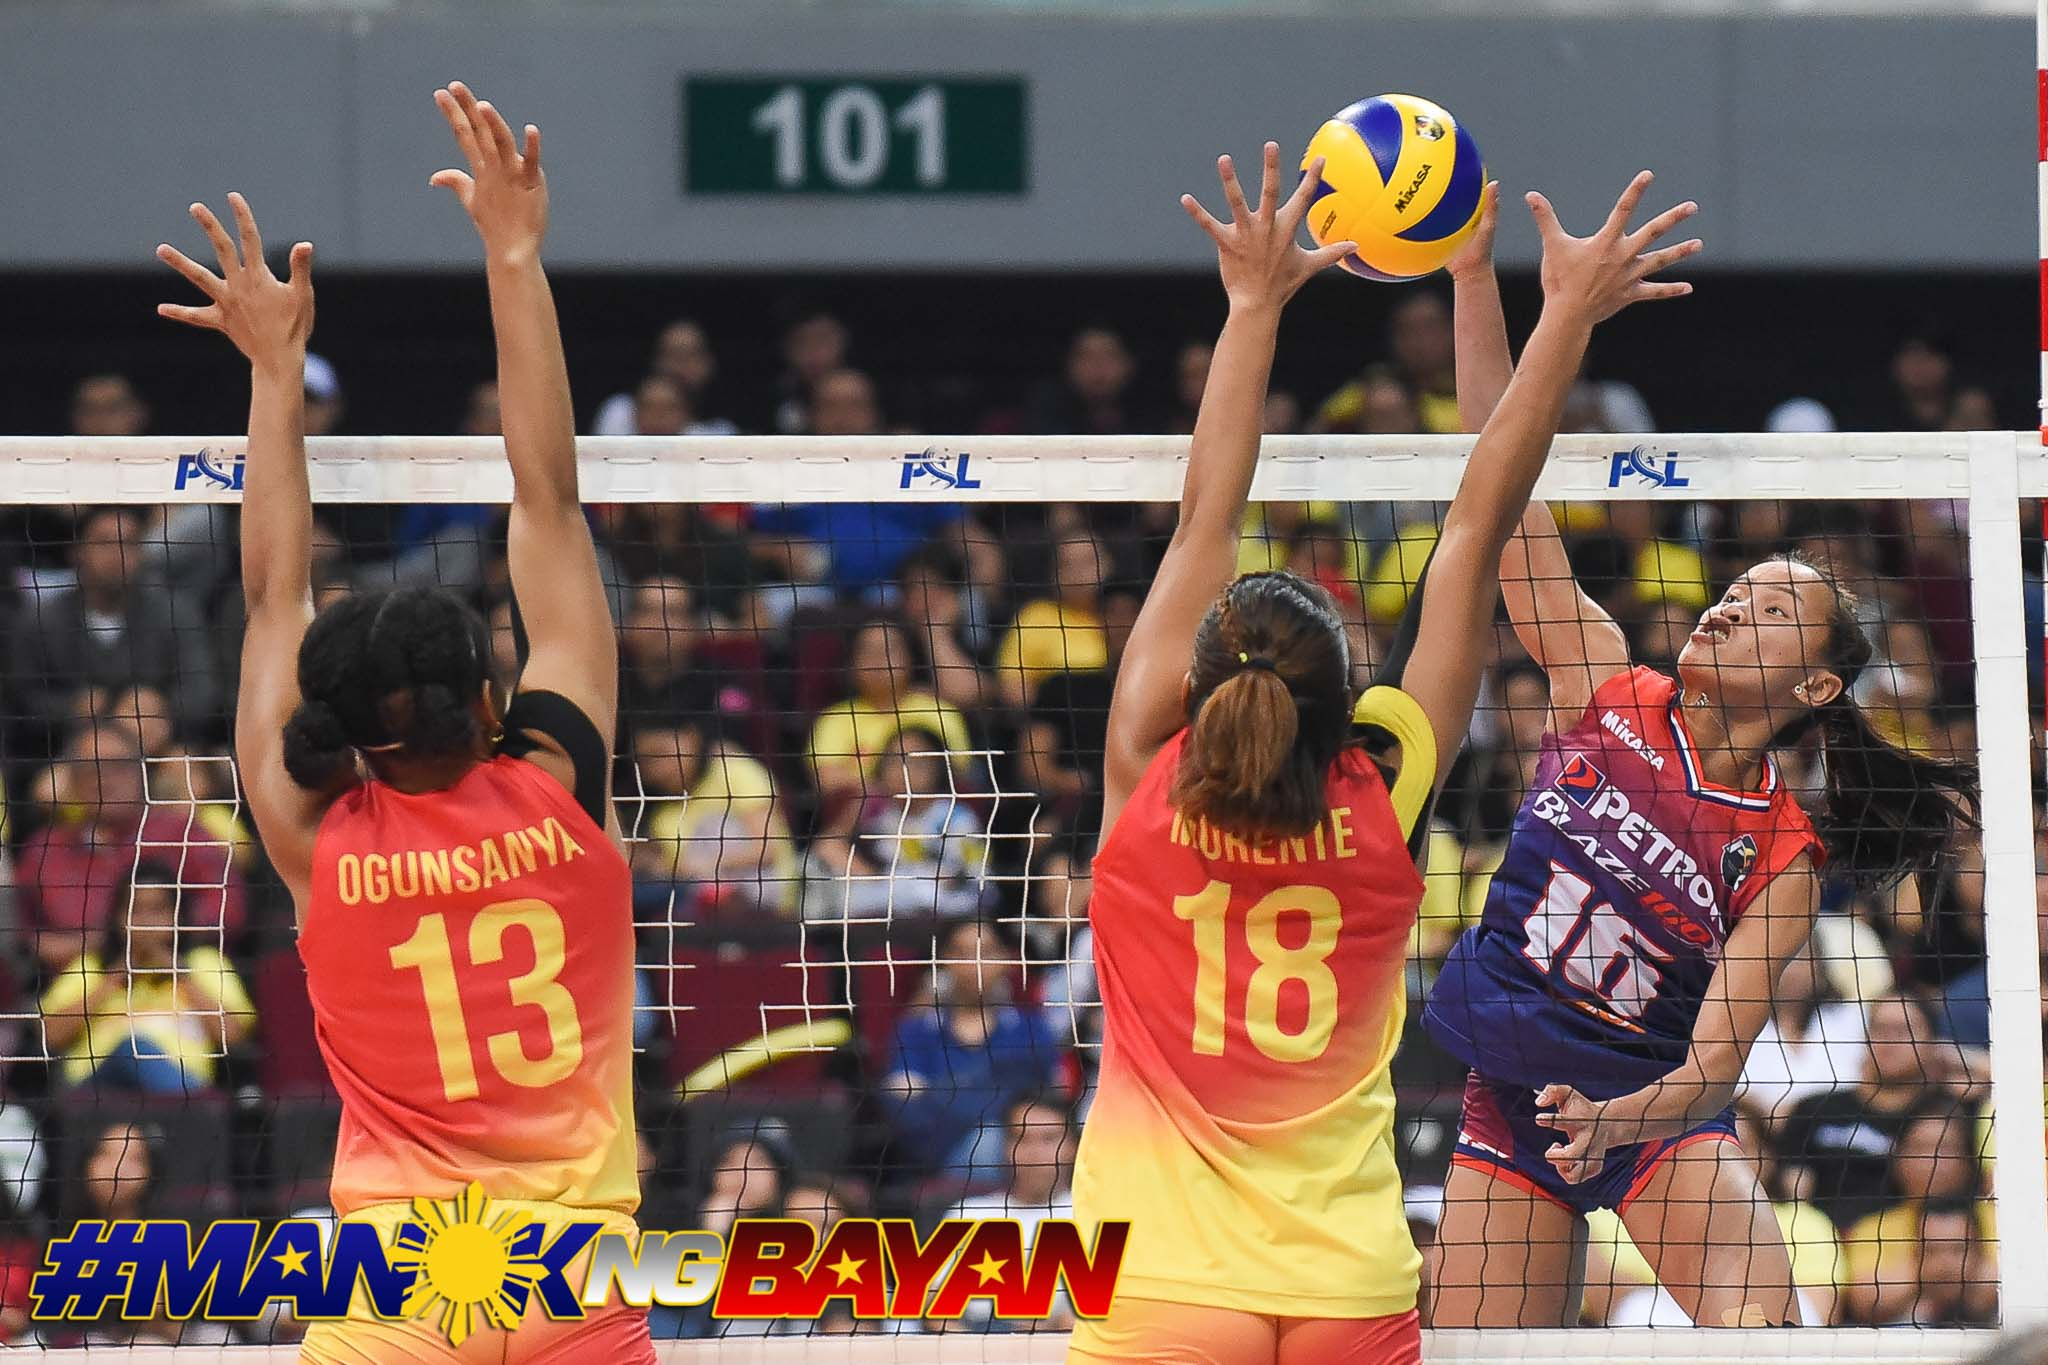 Tiebreaker Times Petron's resbak Sisi Rondina proves crucial in Game One News PSL Volleyball  Petron Blaze Spikers Cherry Rondina 2018 PSL Season 2018 PSL All Filipino Conference